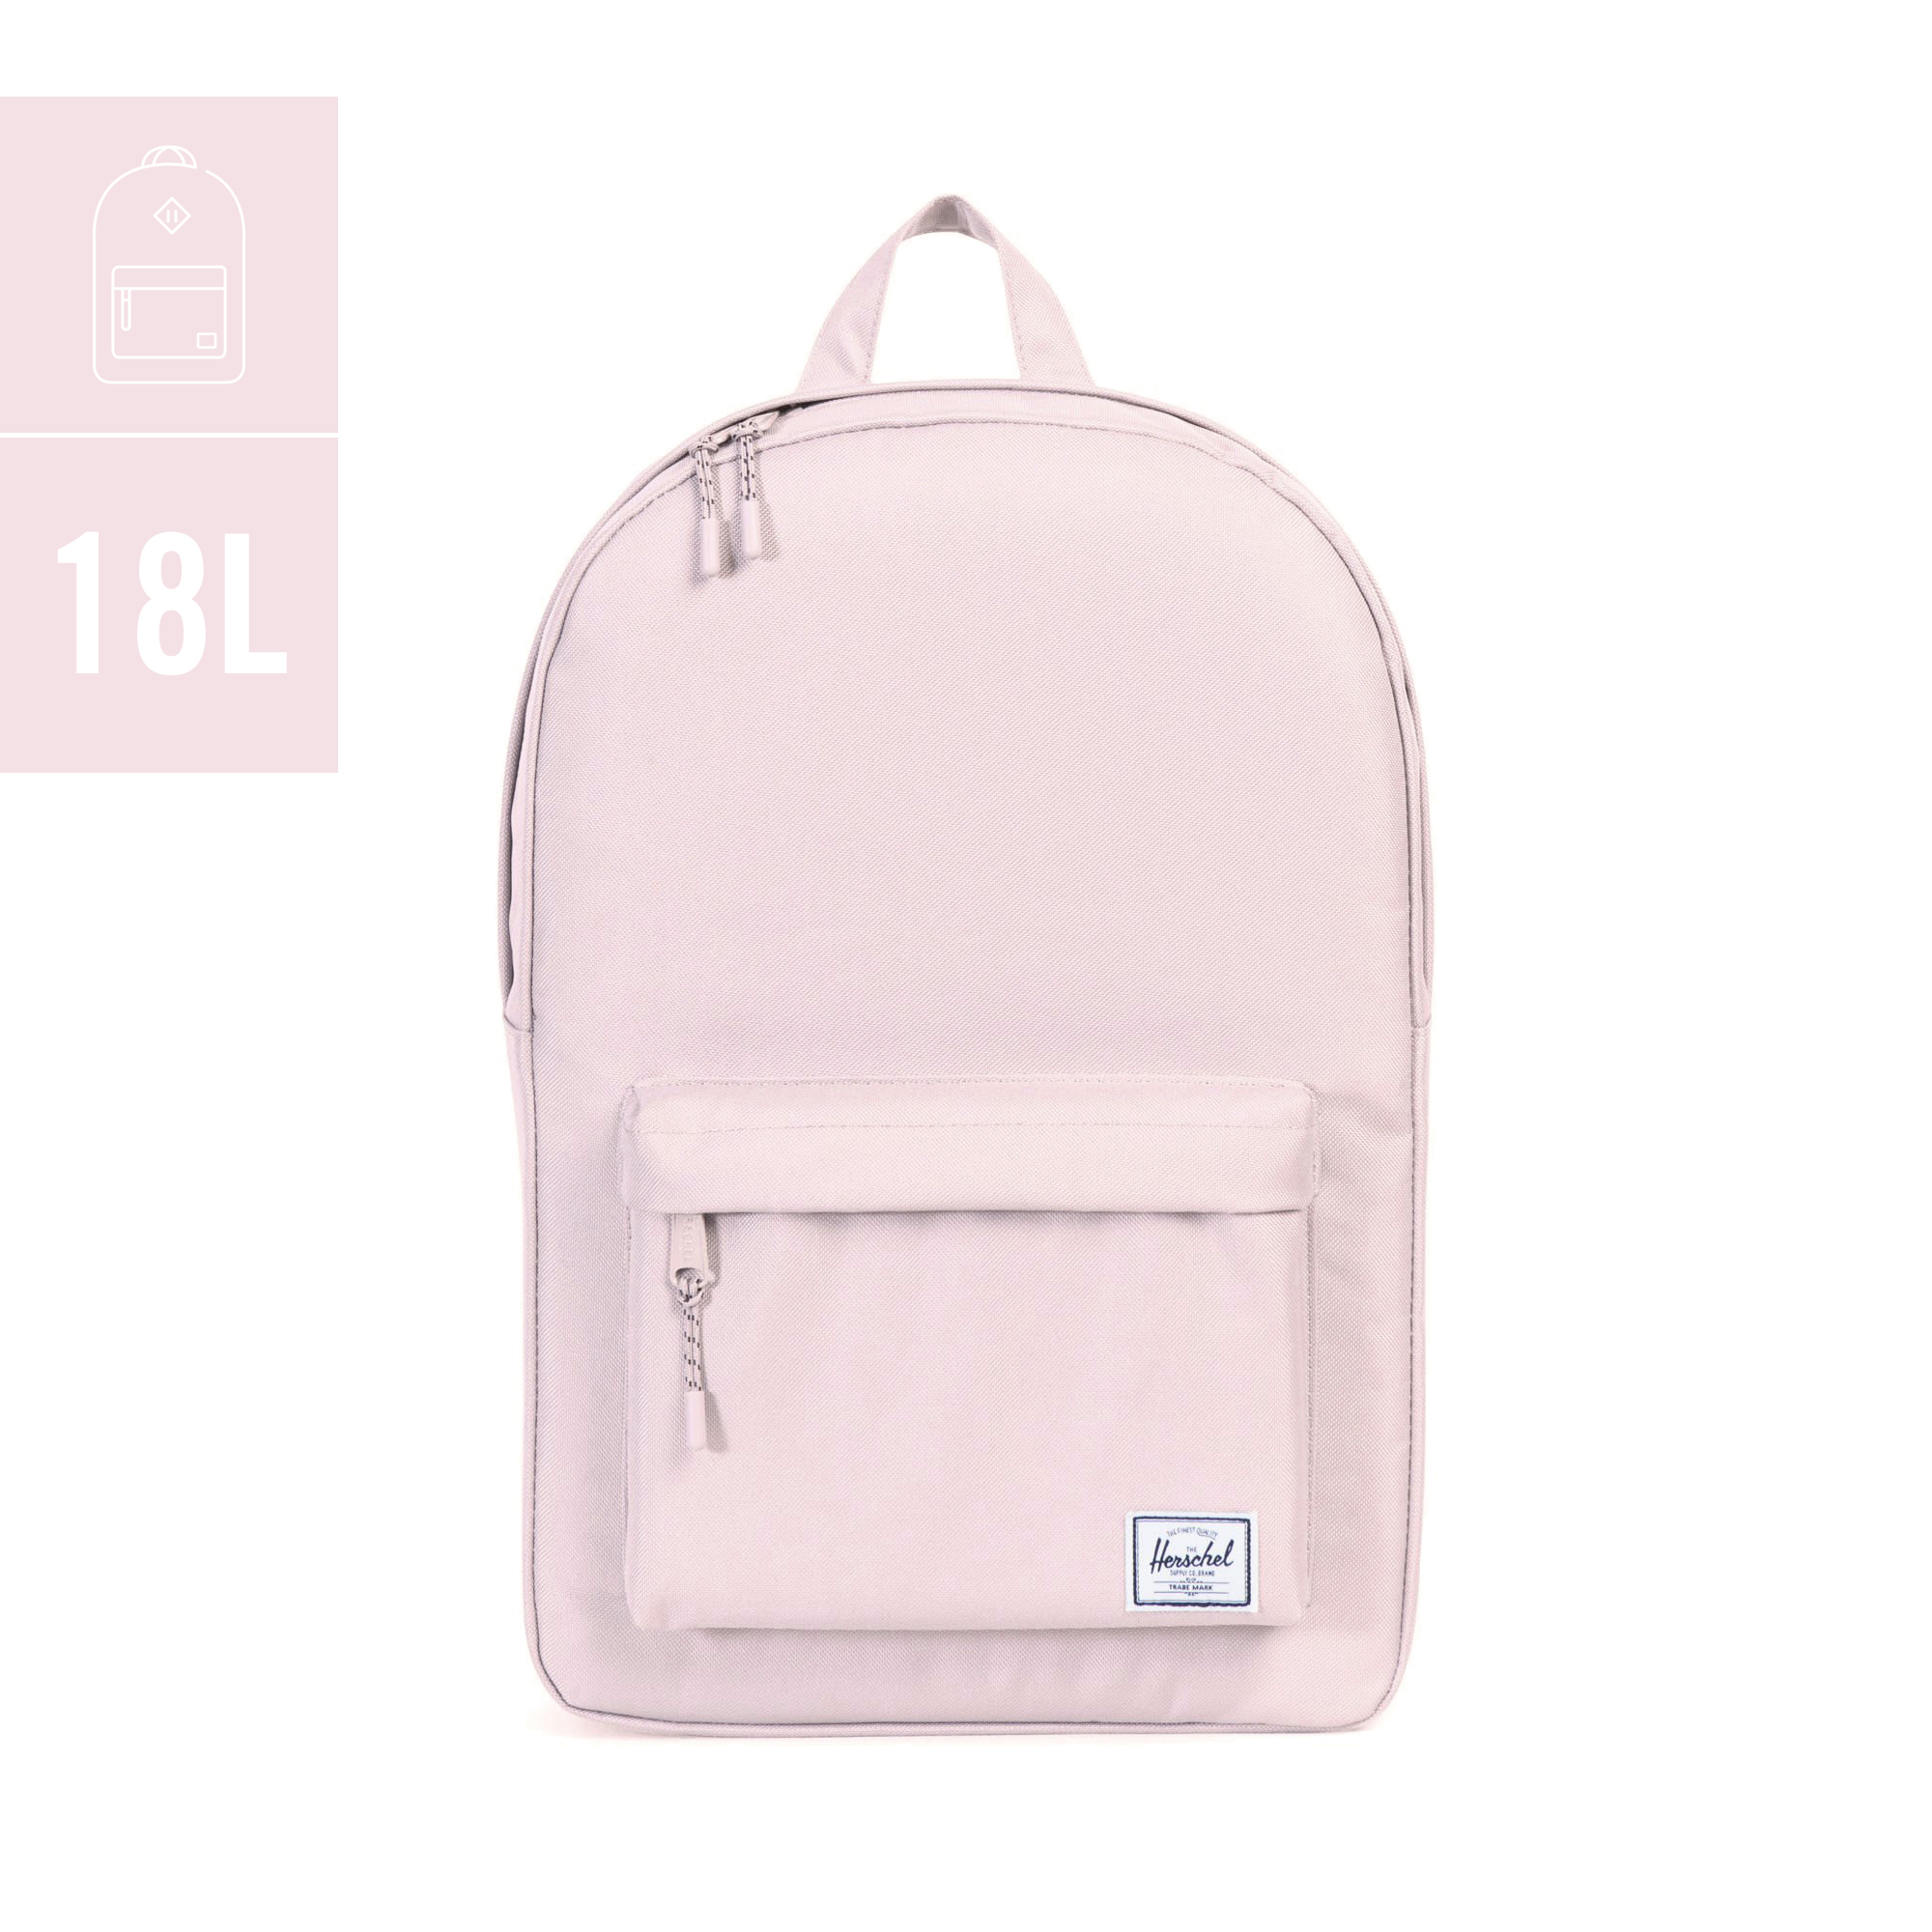 a535c75318 EXCLUSIVE Herschel Classic Mid-Volume Backpack (Blush Pink   Rose ...